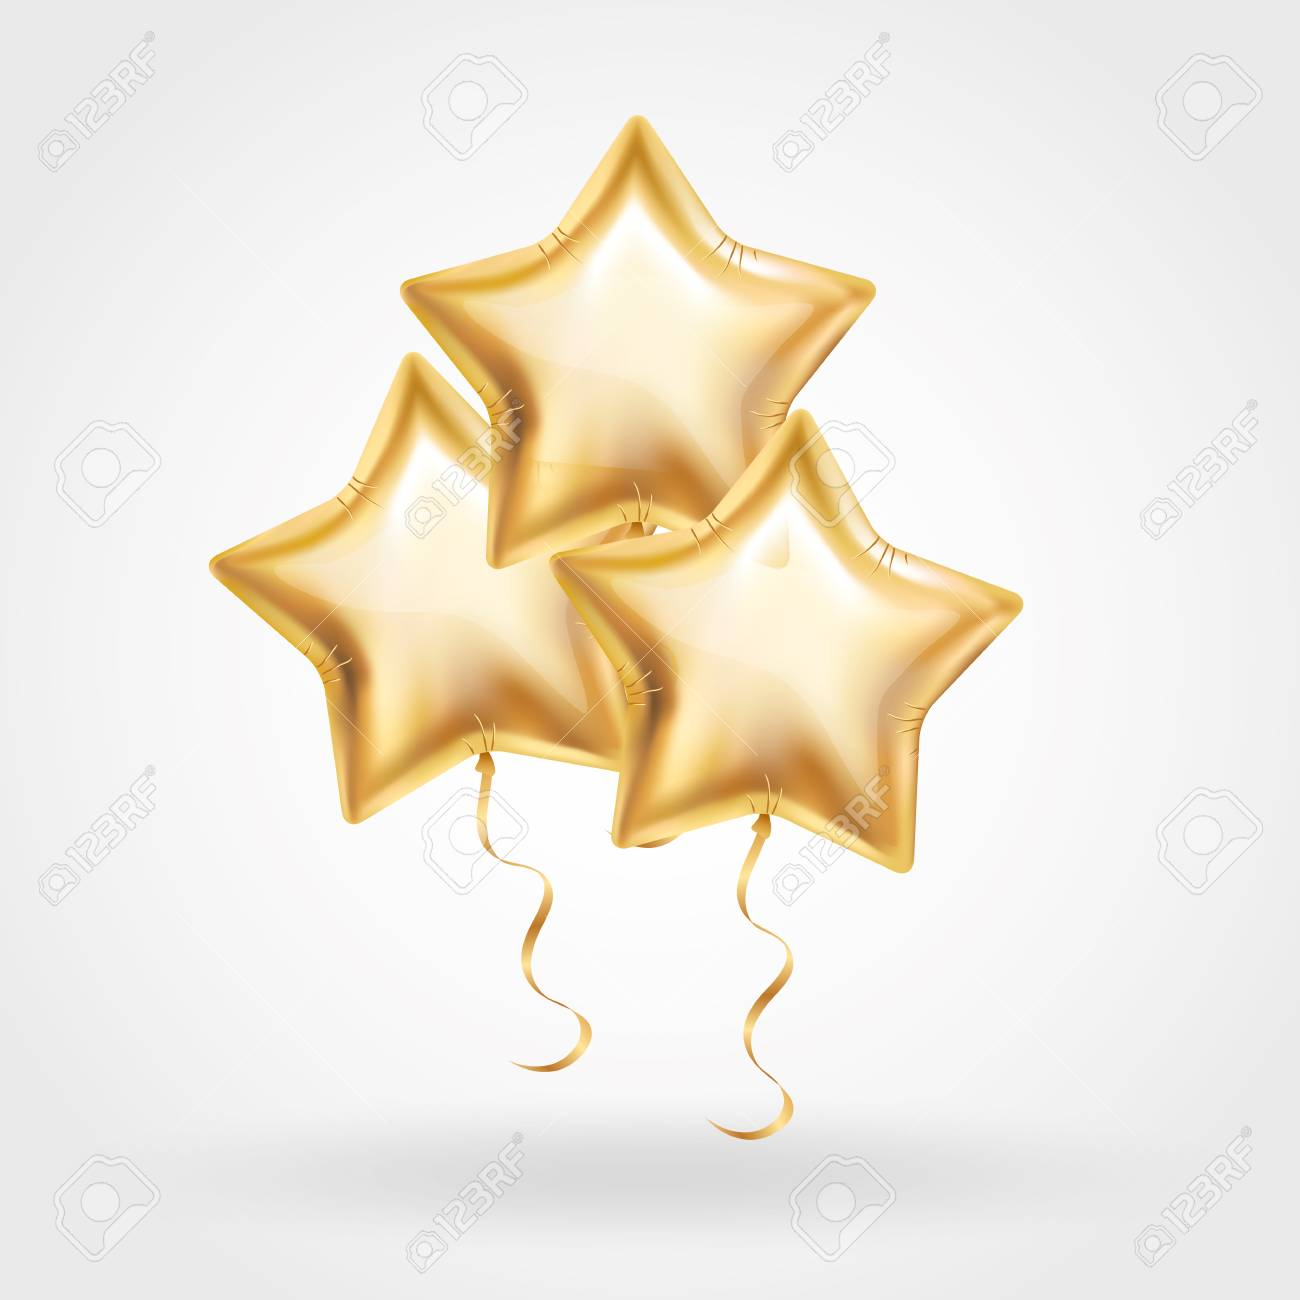 3 Three Gold star balloon on background. Party balloons event design decoration. Balloons isolated in air. Party decorations wedding, birthday, celebration, anniversary, award. Shine Golden balloon - 72172434